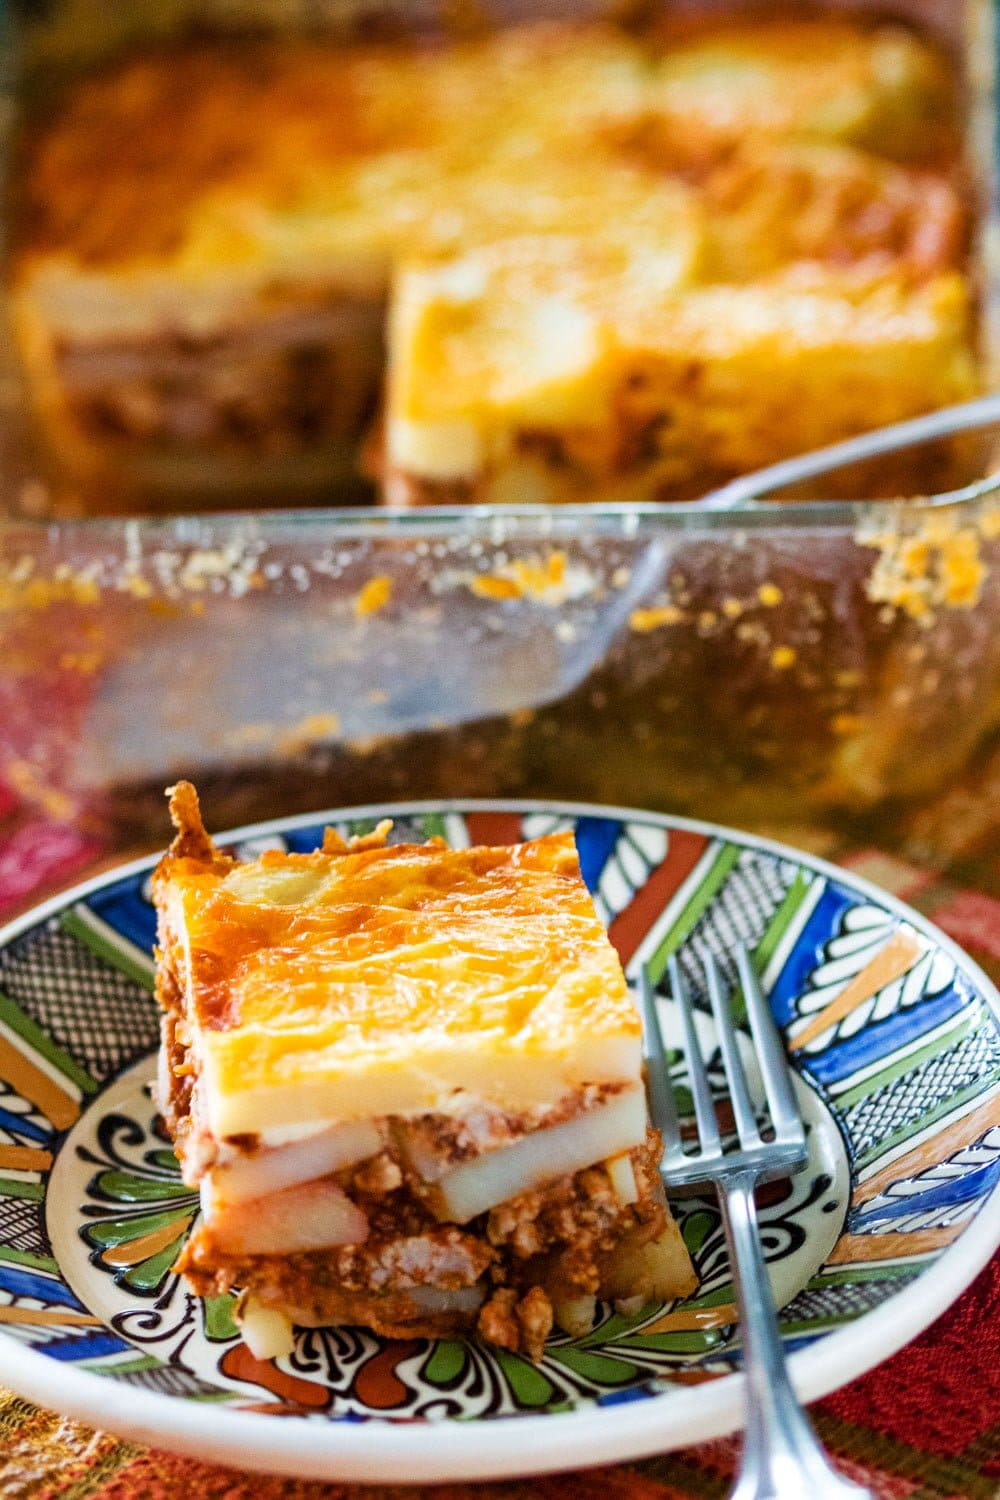 Romanian Authentic Potato Moussaka- Pinterest featured picture- piece of moussaka served on a colored plate with fork- bake tray in the background